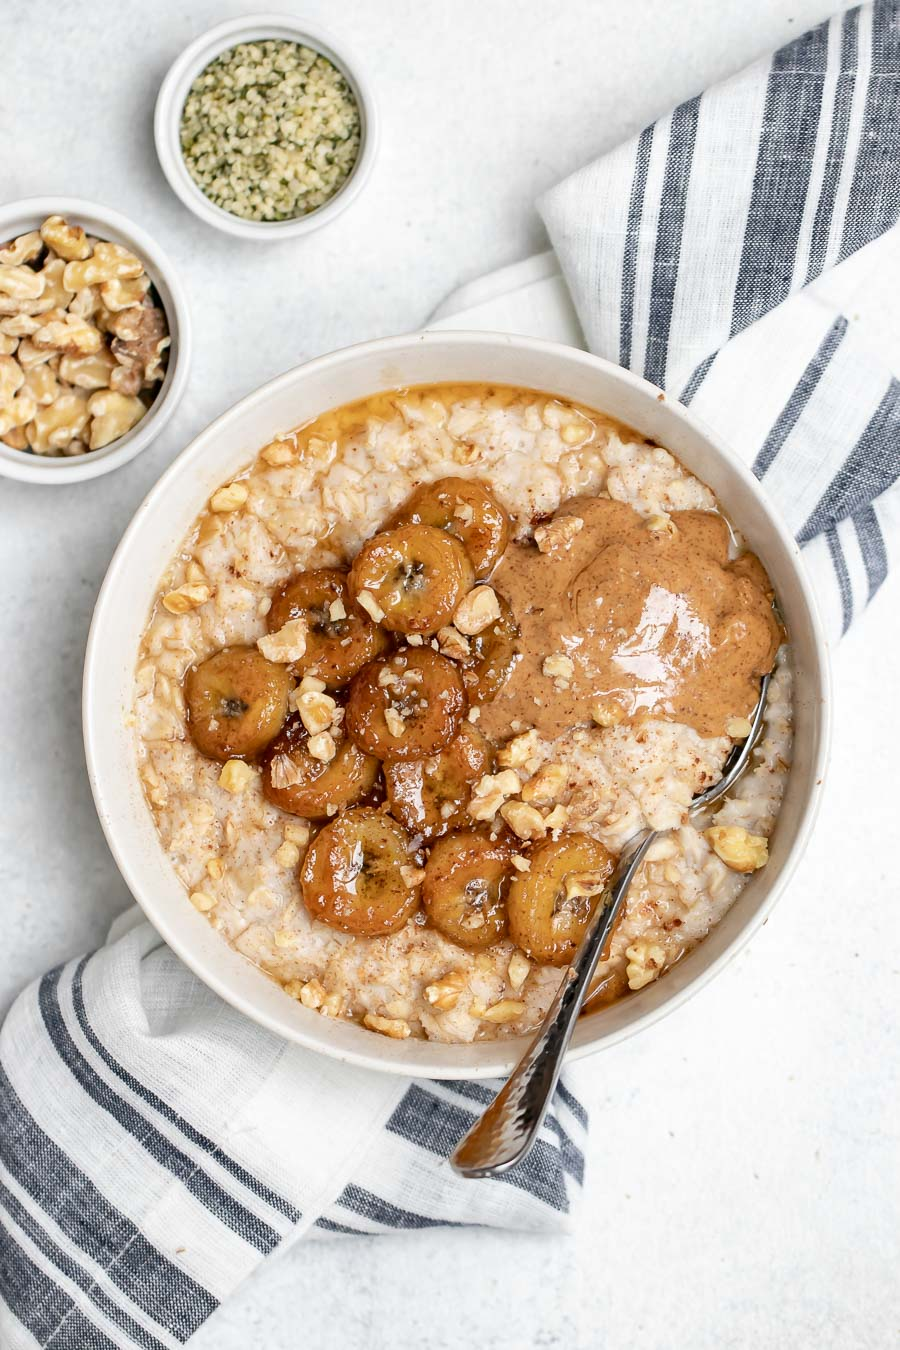 The BEST Caramelized Banana Oatmeal | Eat With Clarity